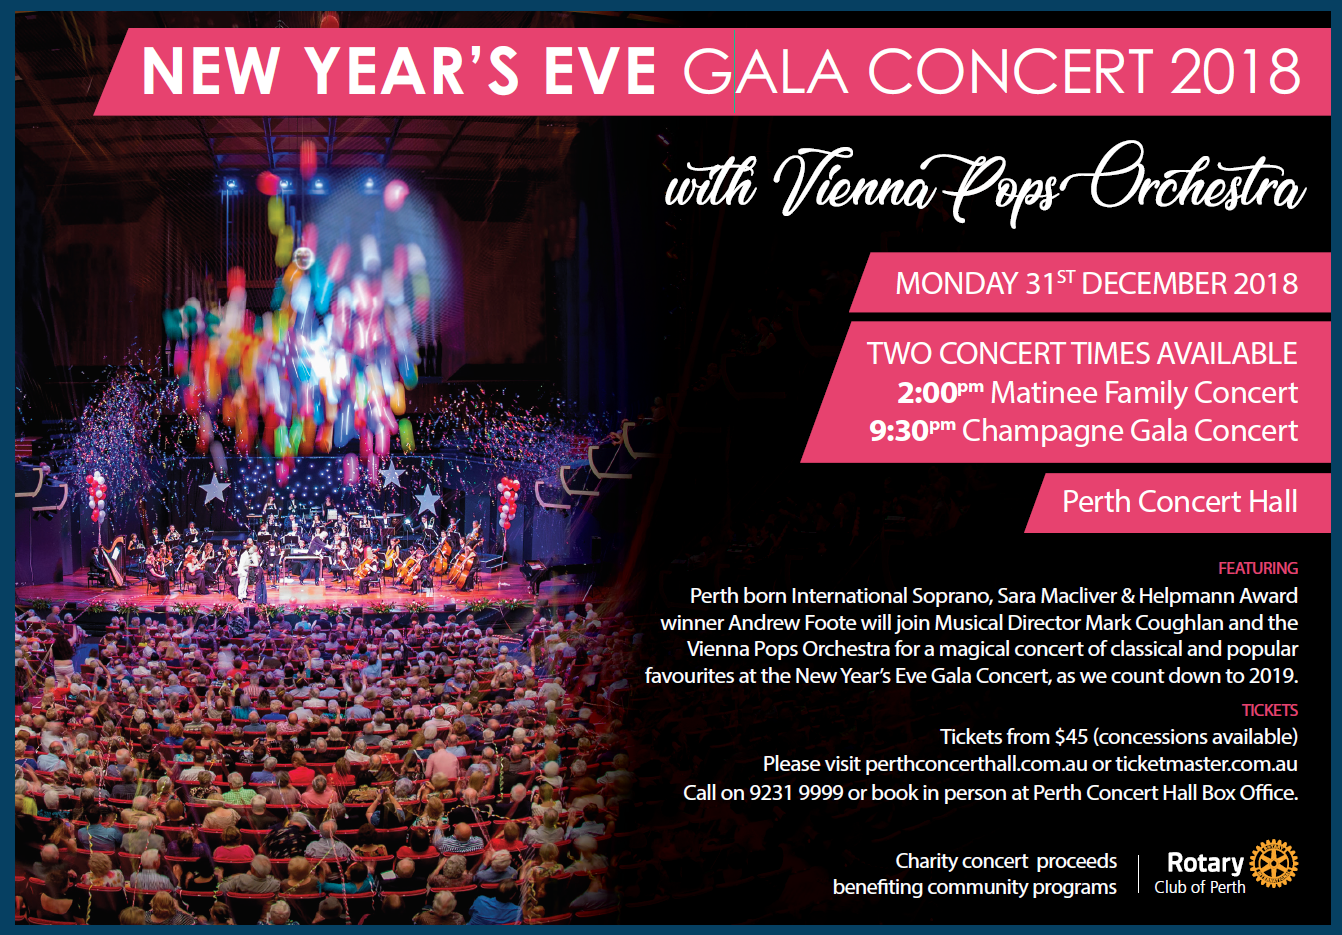 2018 new years eve gala concert